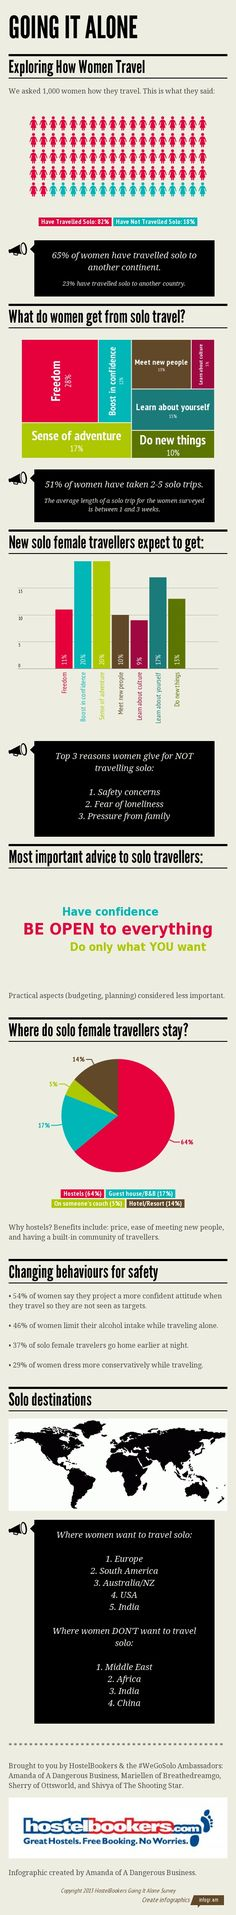 #WeGoSolo Female solo travellers infographic